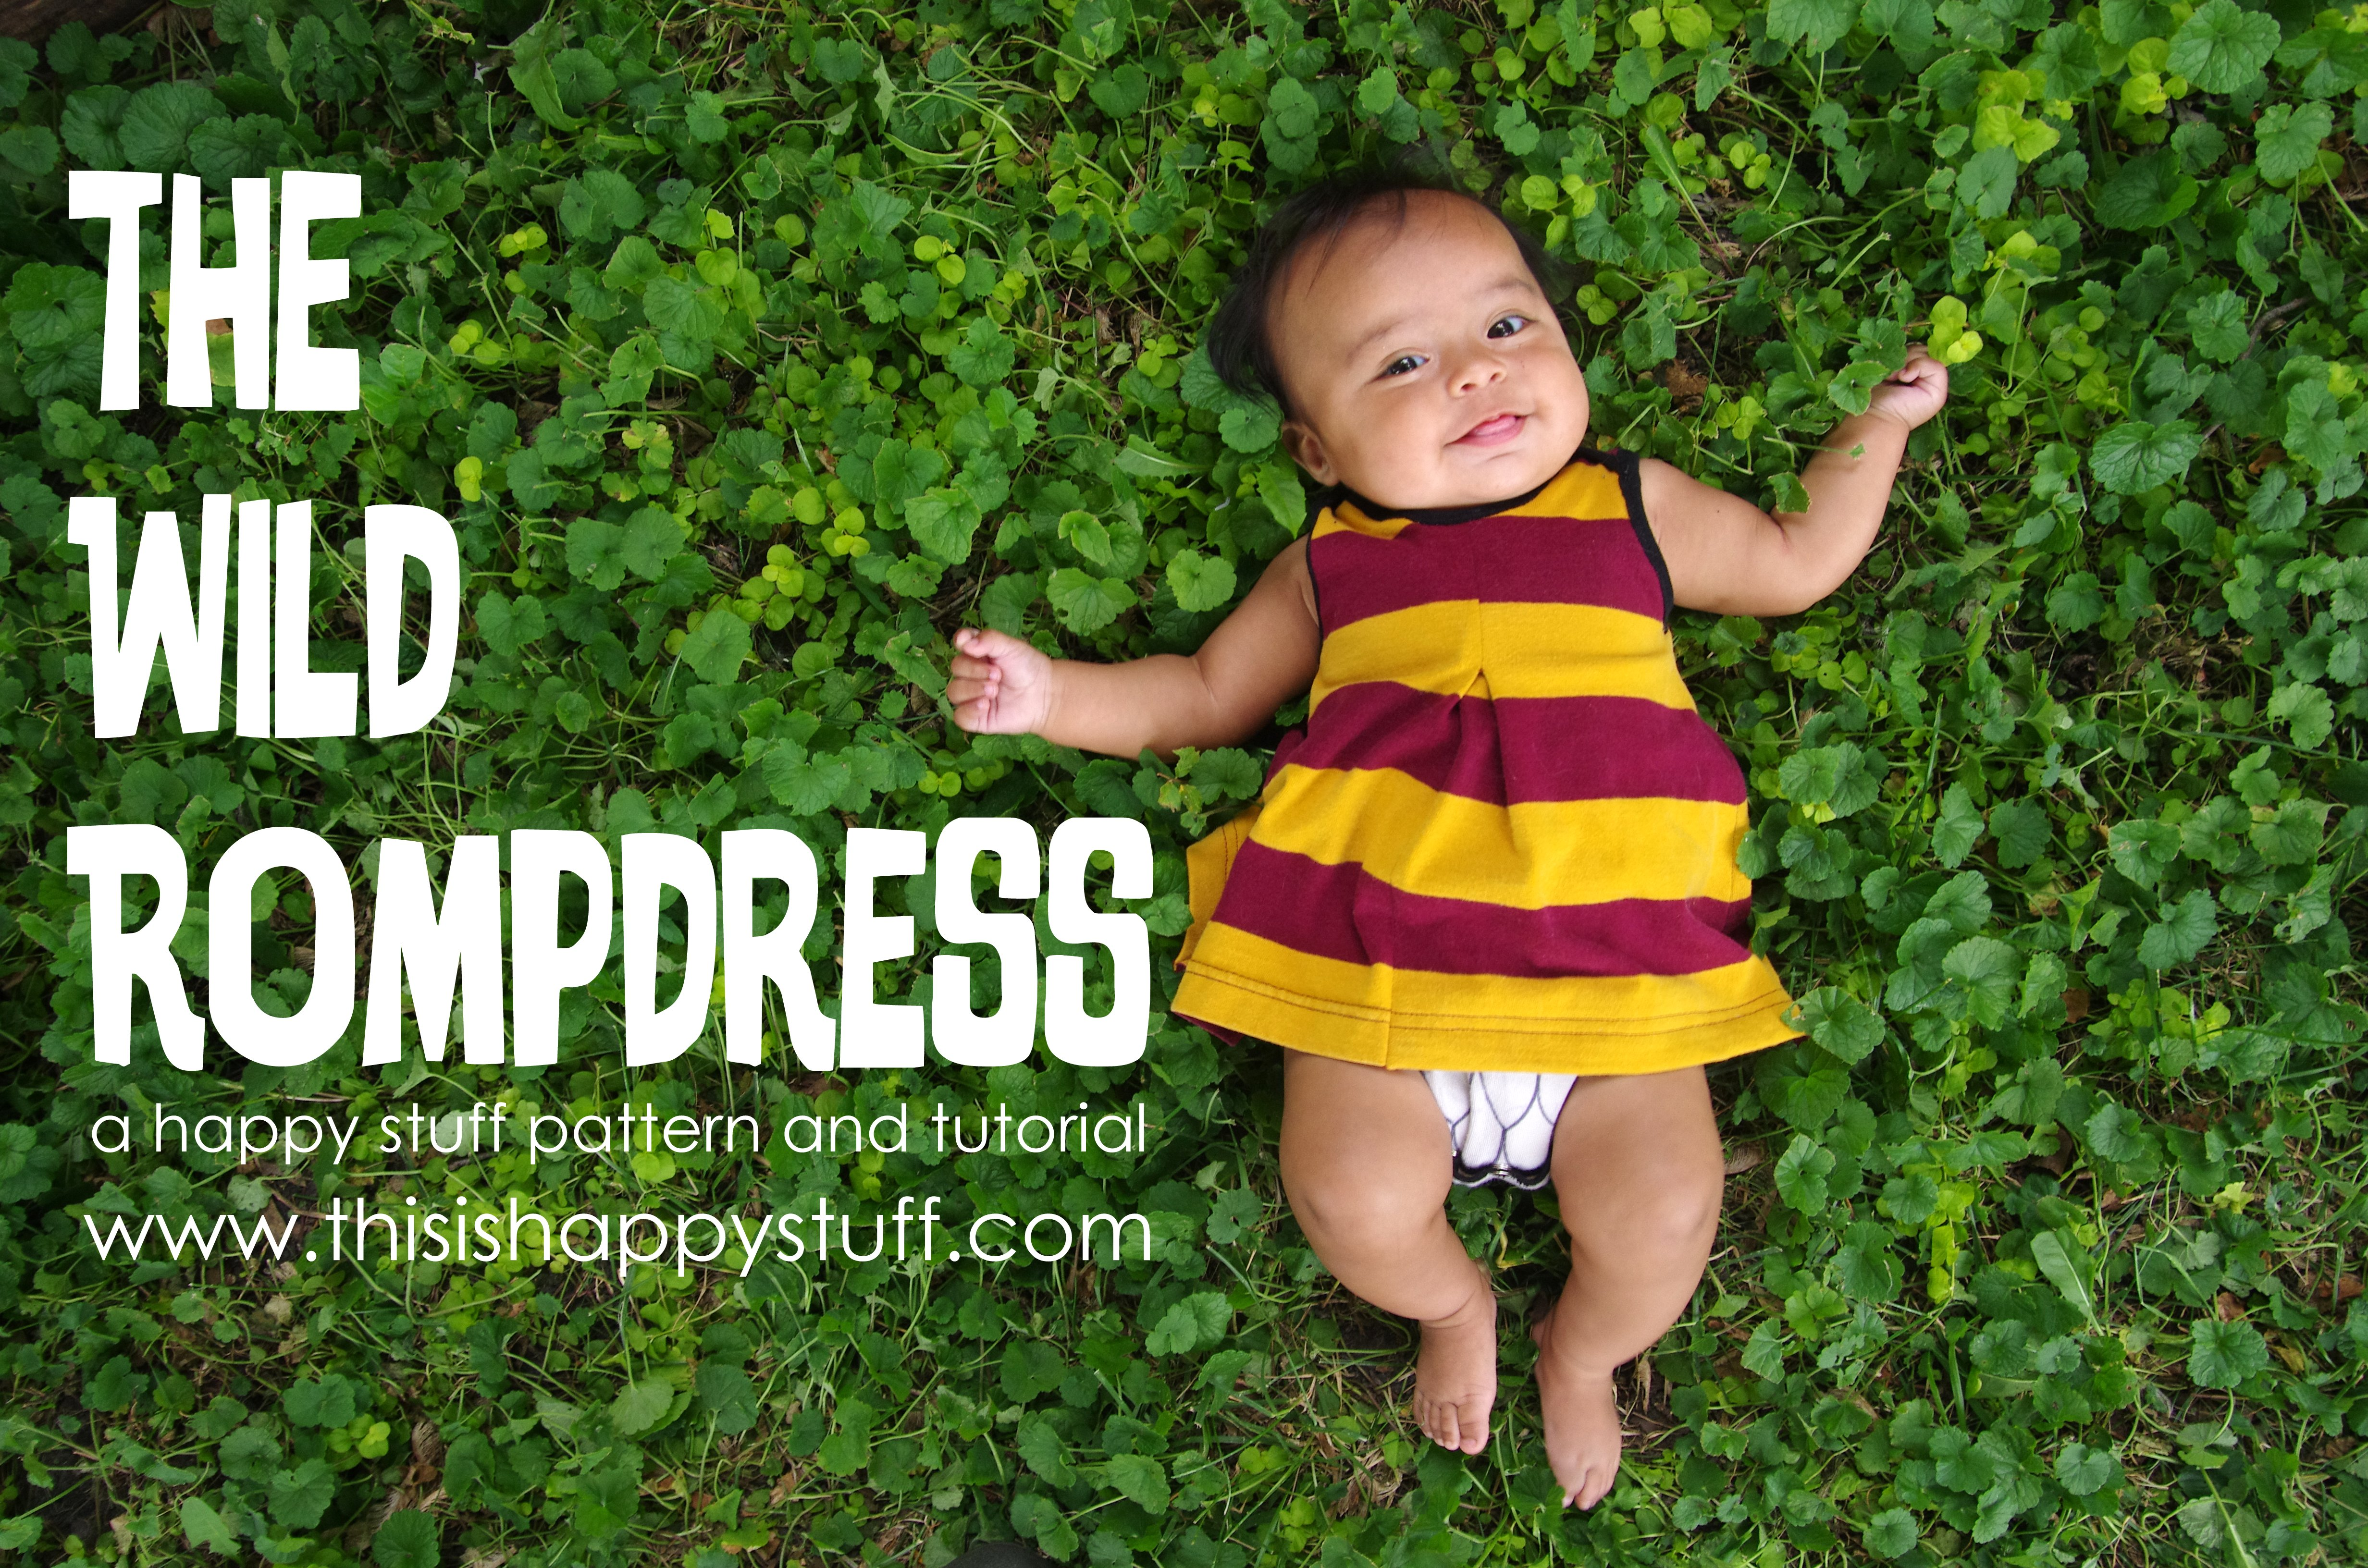 the wild rompdress :: www.thisishappystuff.com